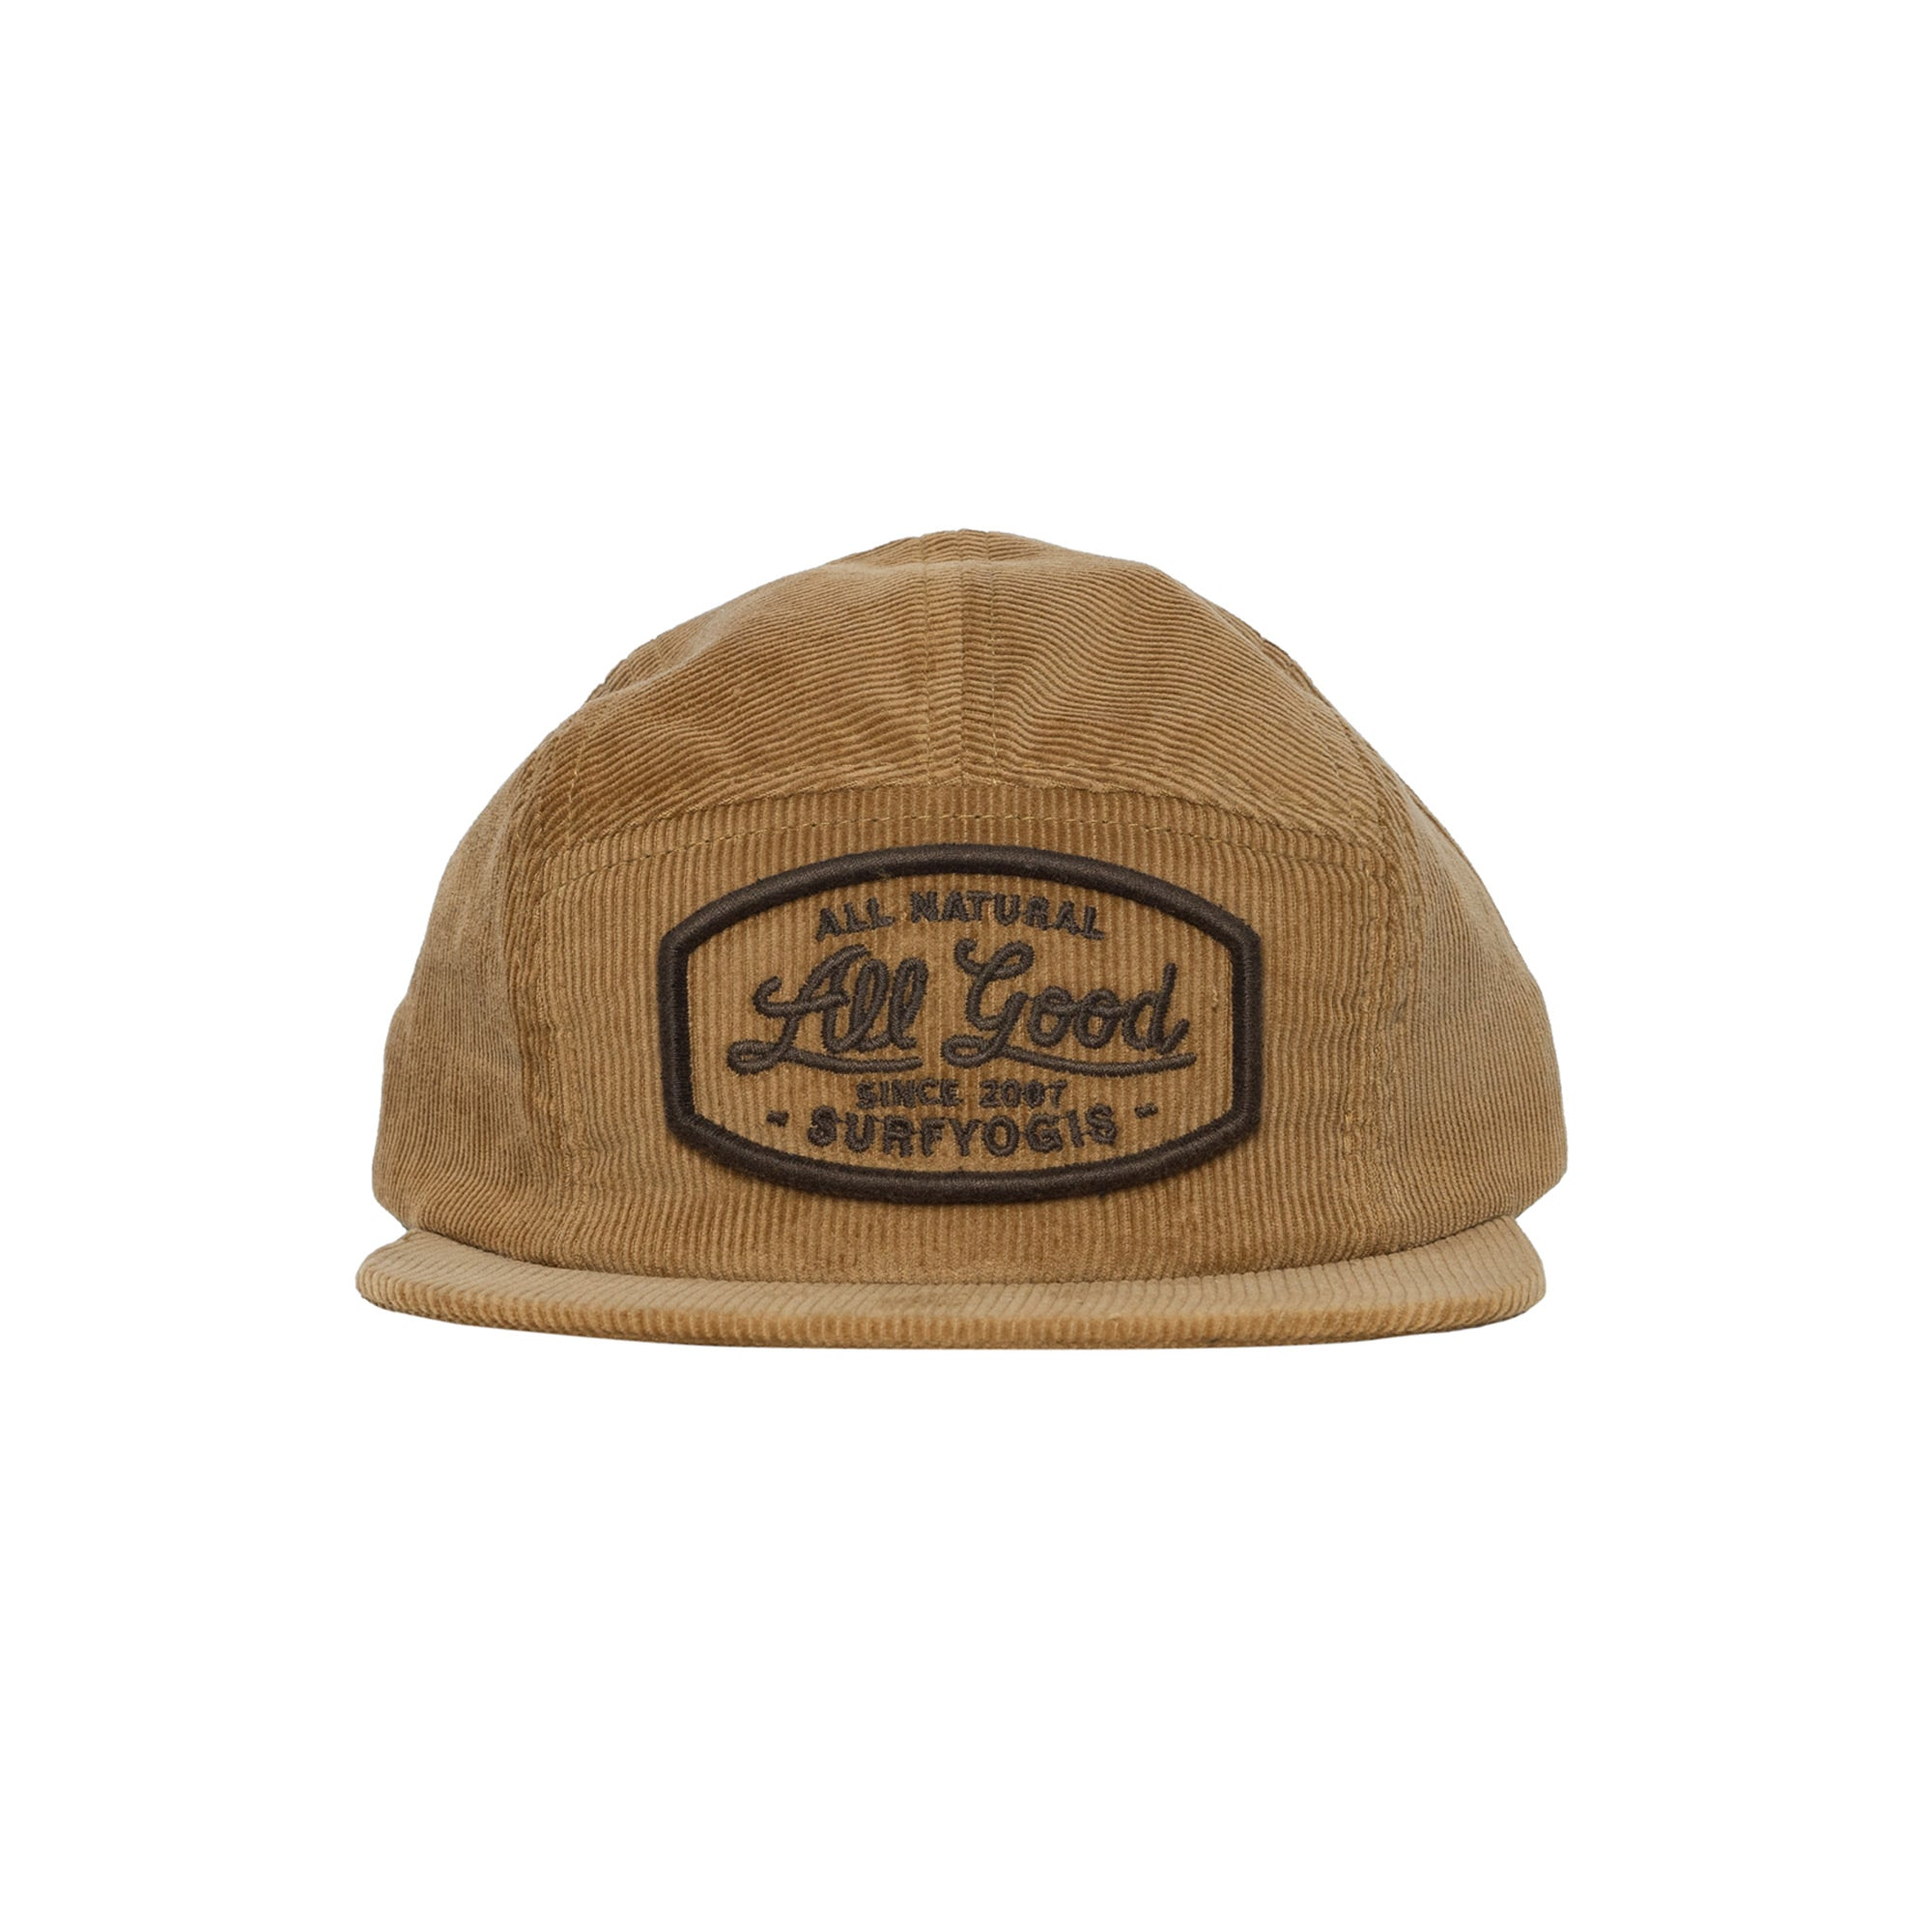 "Brown Corduroy Hat. Brown Embroidered Text. ""All Natural, ALL GOOD, Since 2007, Surfyogis"